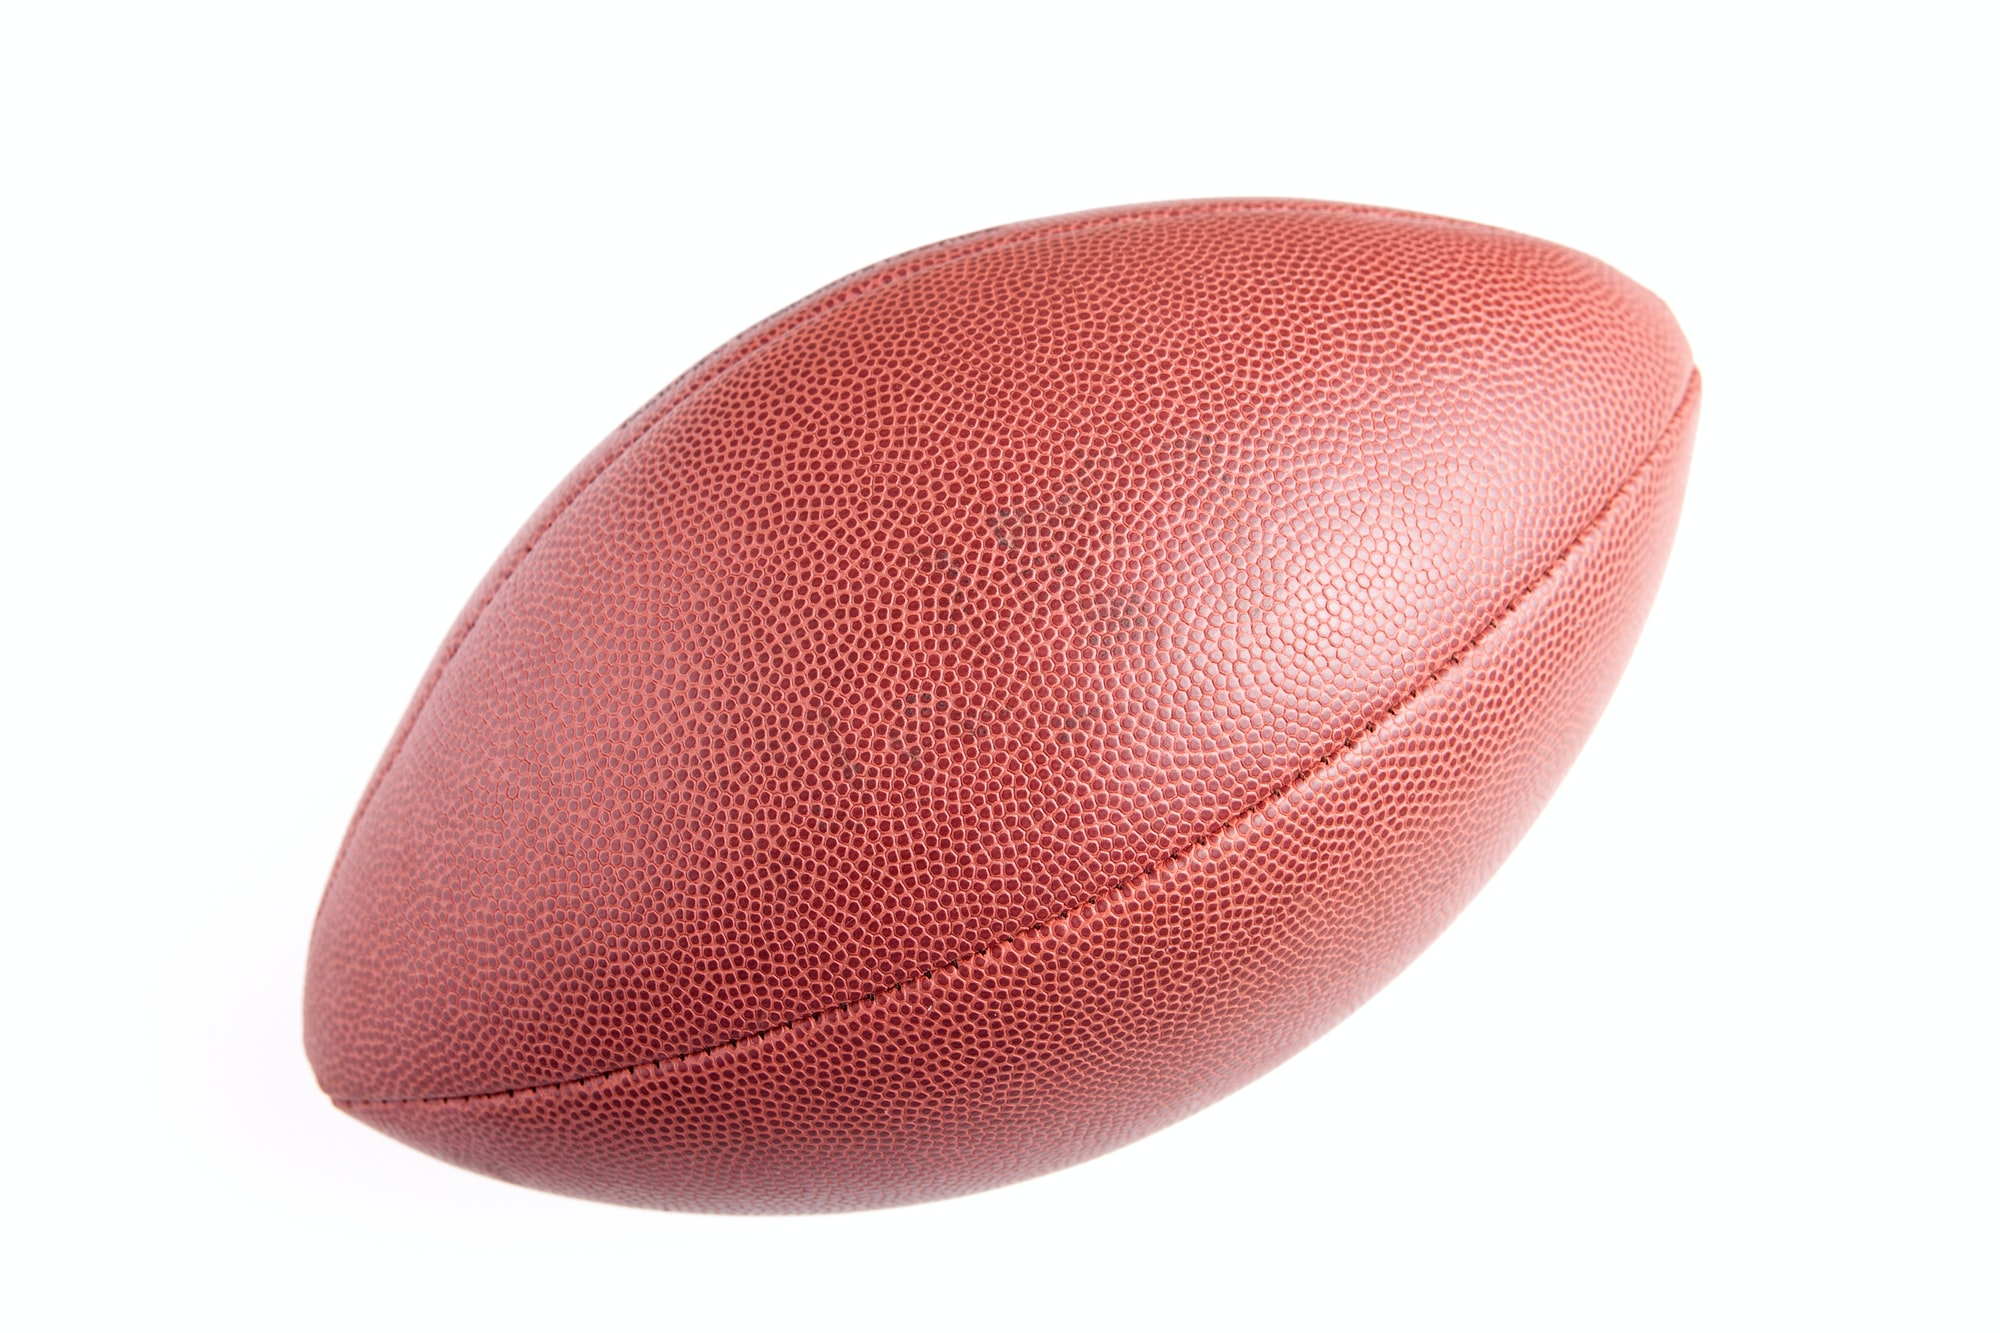 Lucy's Football